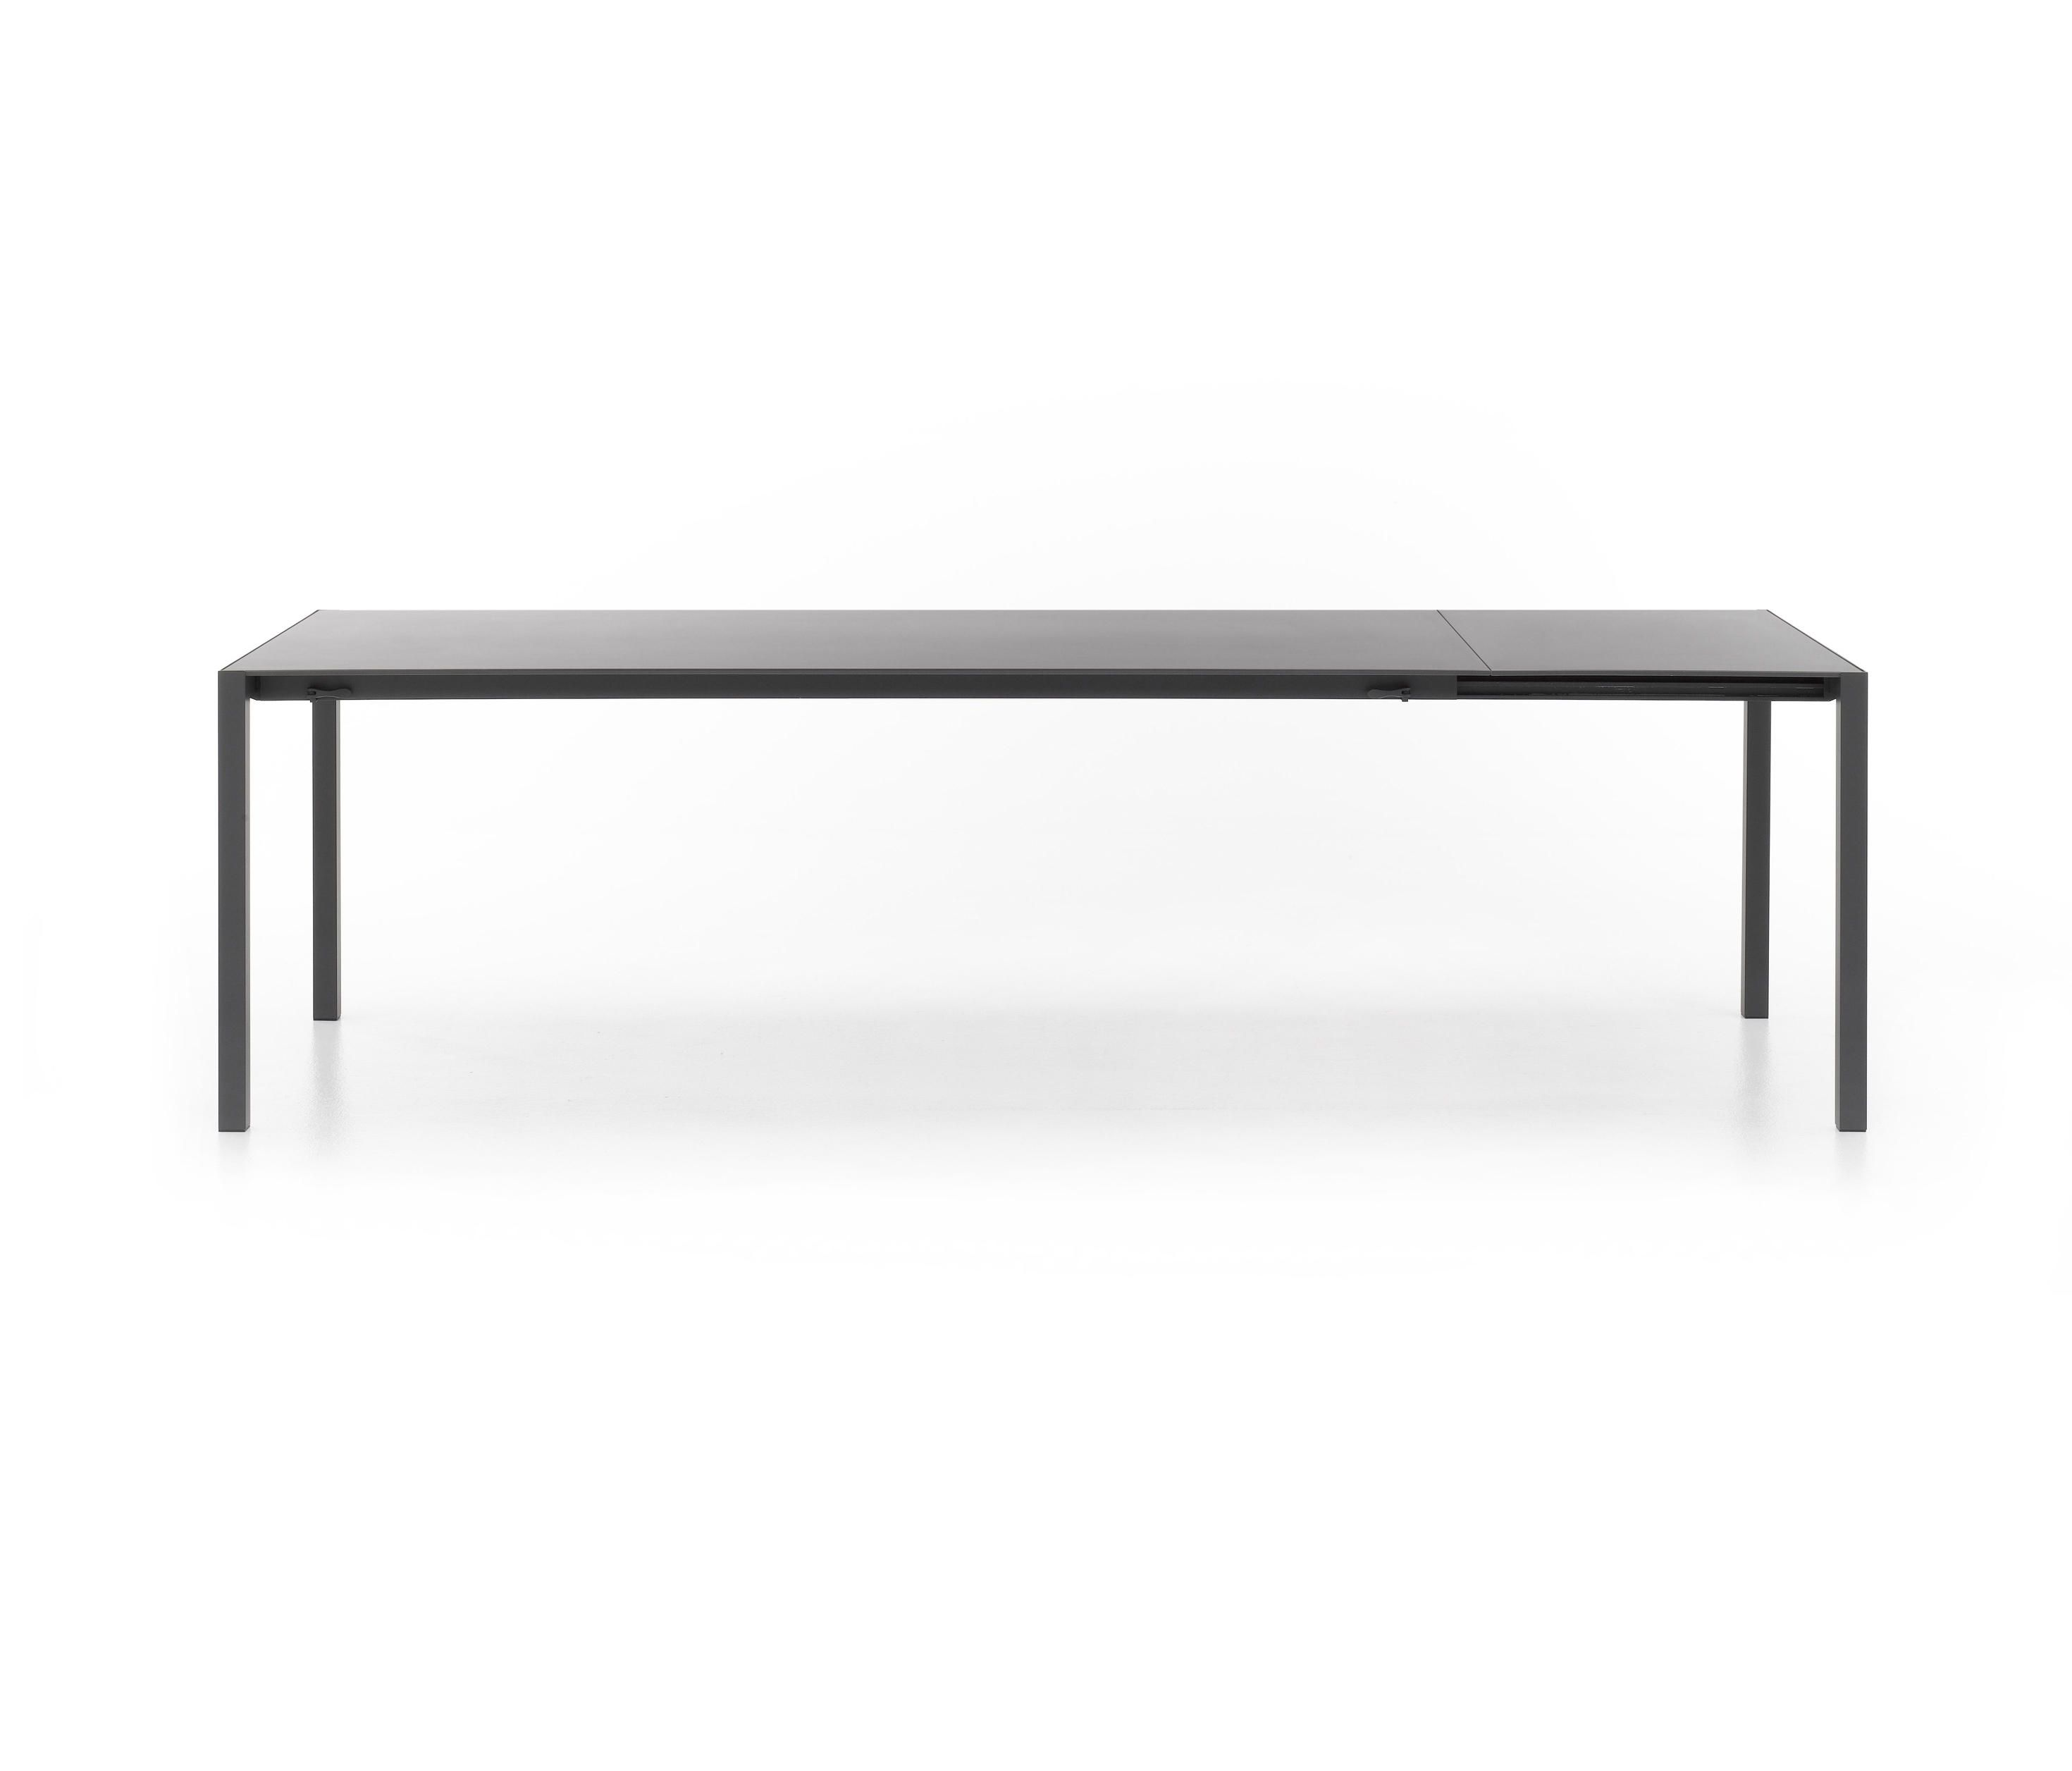 afbc024b09c574 EXT TABLE - Designer Meeting room tables from MDF Italia ✓ all information  ✓ high-resolution images ✓ CADs ✓ catalogues ✓ contact information.